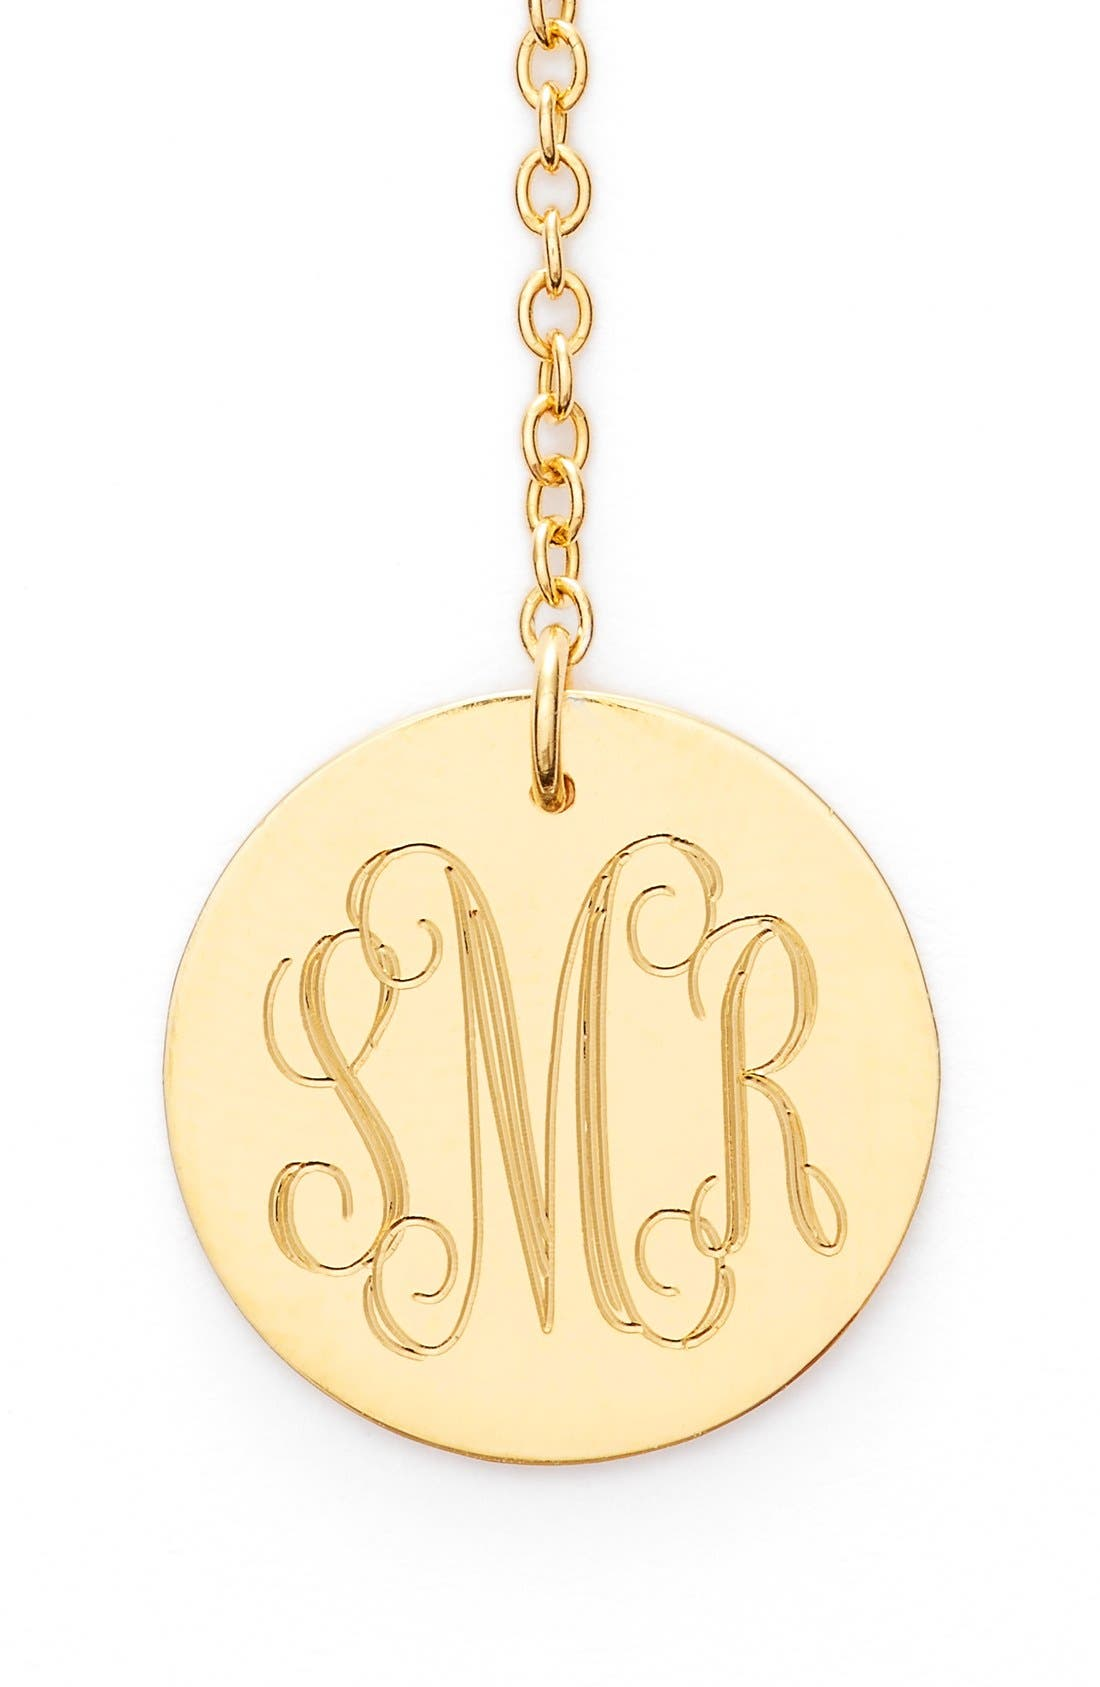 Diamond & Personalized Monogram Y-Necklace,                             Alternate thumbnail 2, color,                             710